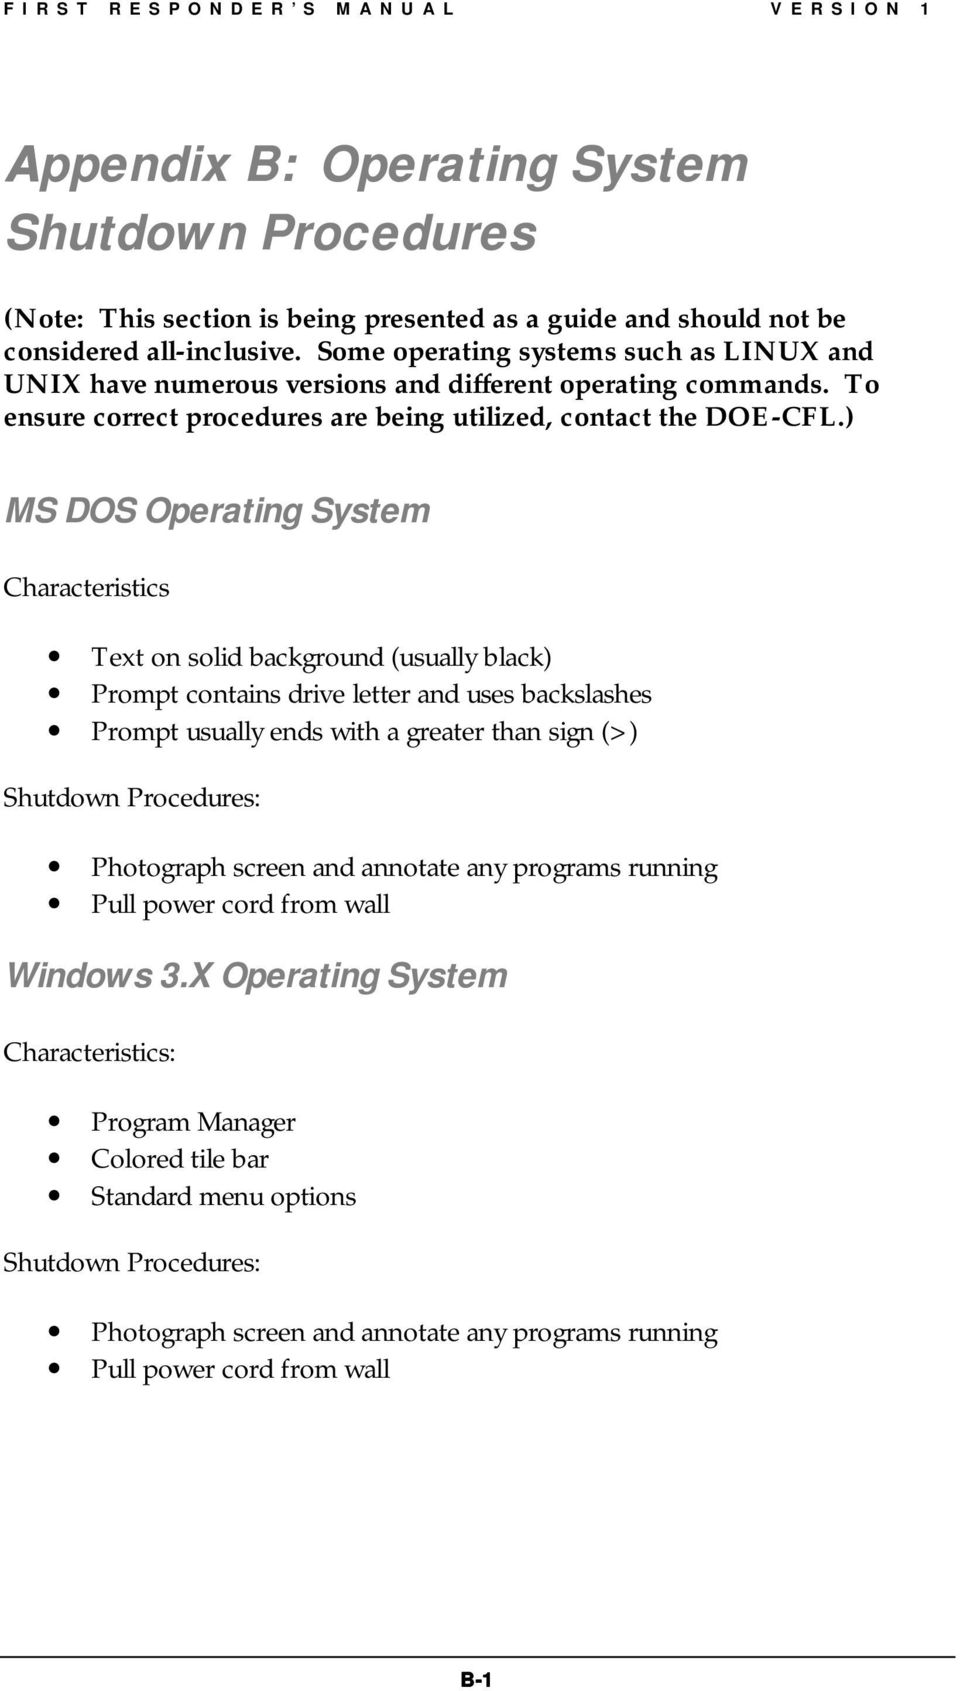 ) MS DOS Operating System Characteristics Text on solid background (usually black) Prompt contains drive letter and uses backslashes Prompt usually ends with a greater than sign (>) Shutdown